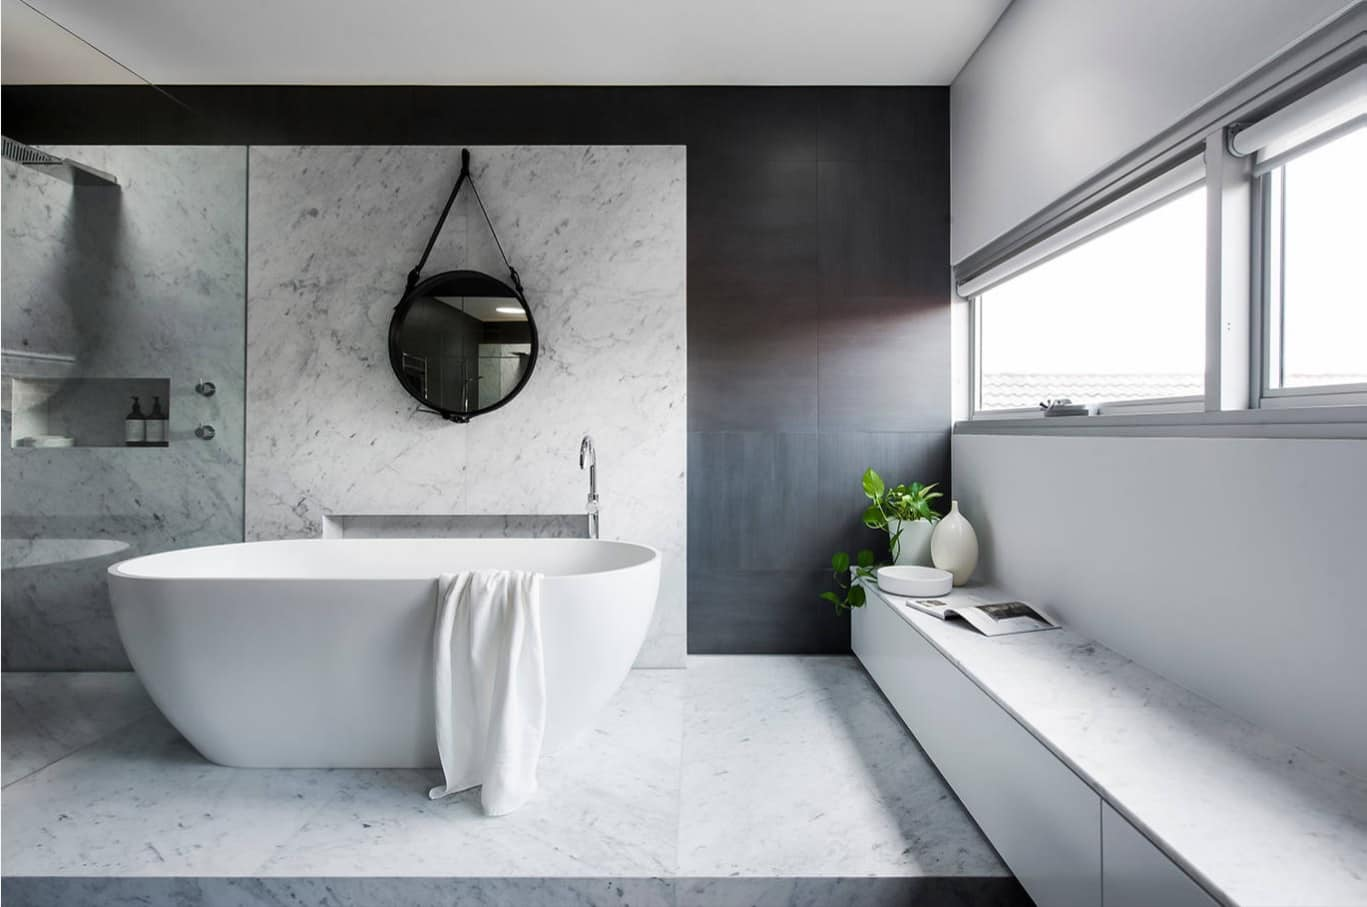 5 Design Ideas that will Make Your Bathroom Beautiful. Large room with the countertop at the panel window